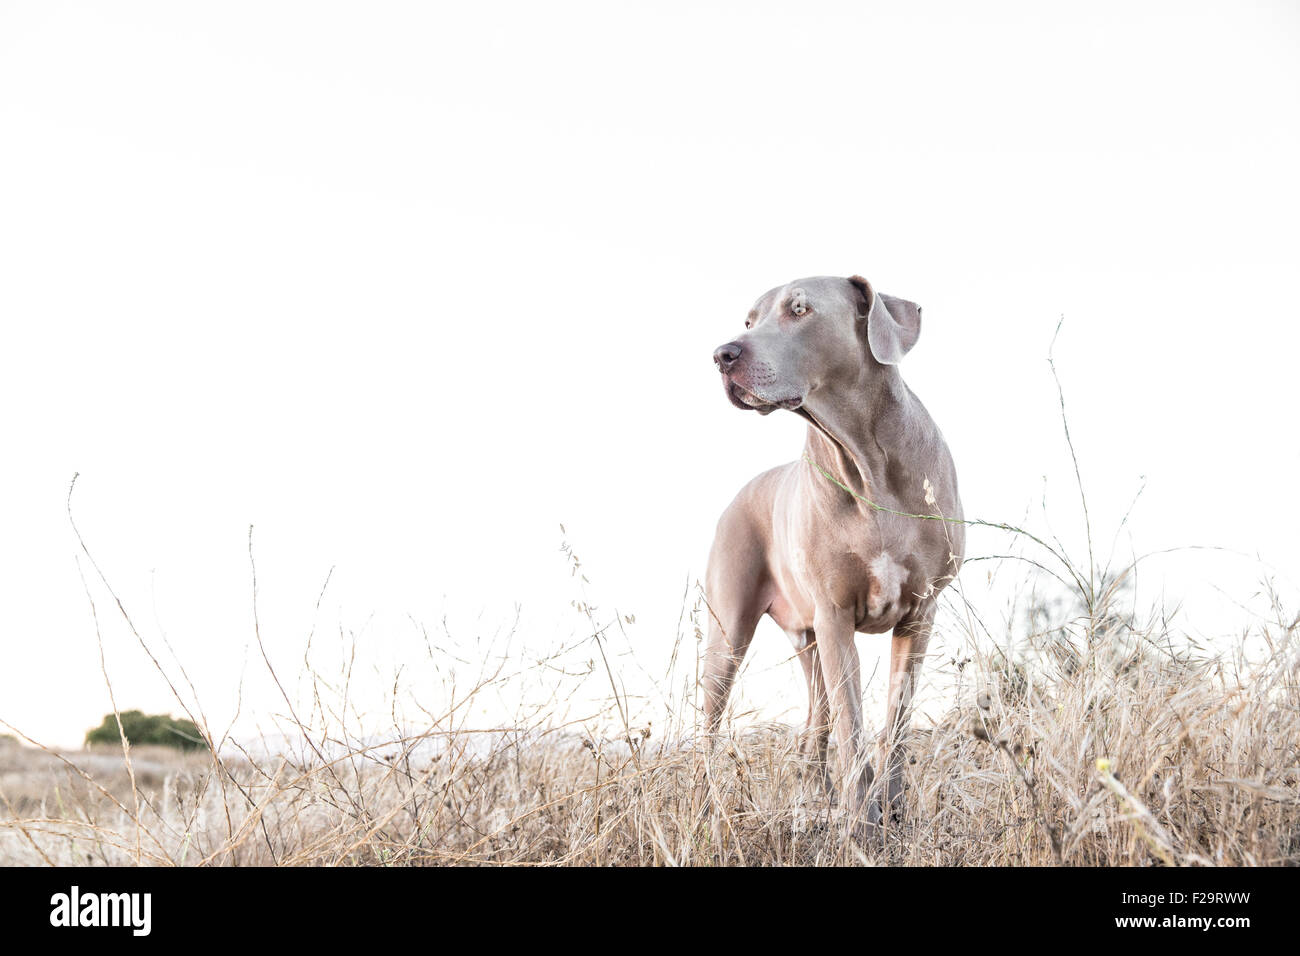 Adult Weimaraner dog standing facing camera, looking off to camera left in a dry barren field, negative space for - Stock Image